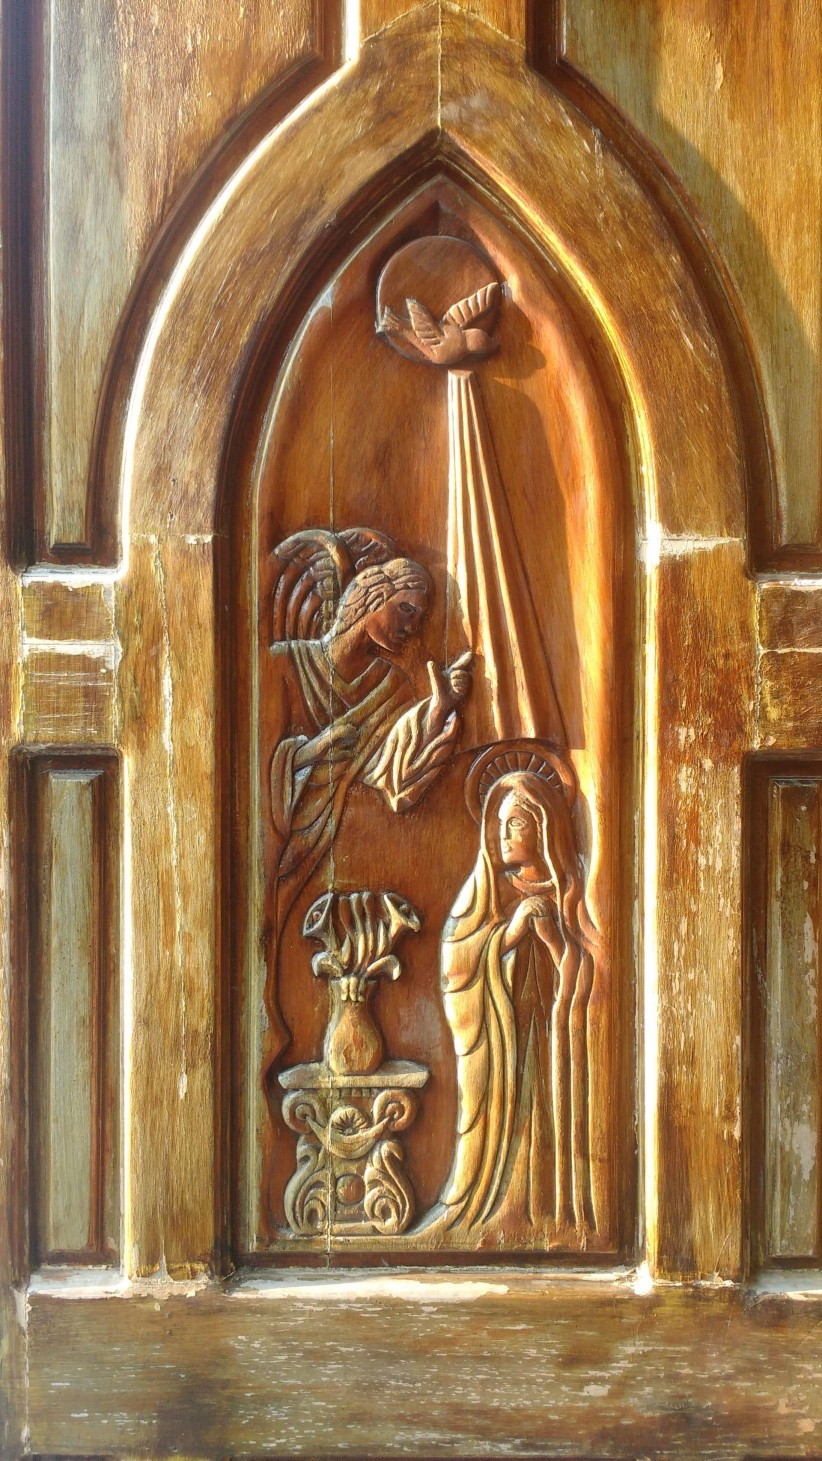 virgin mary, archangel gabriel, the announcement, ad, angel, fiat, encarnacion, annunciation, holy spirit, door, temple